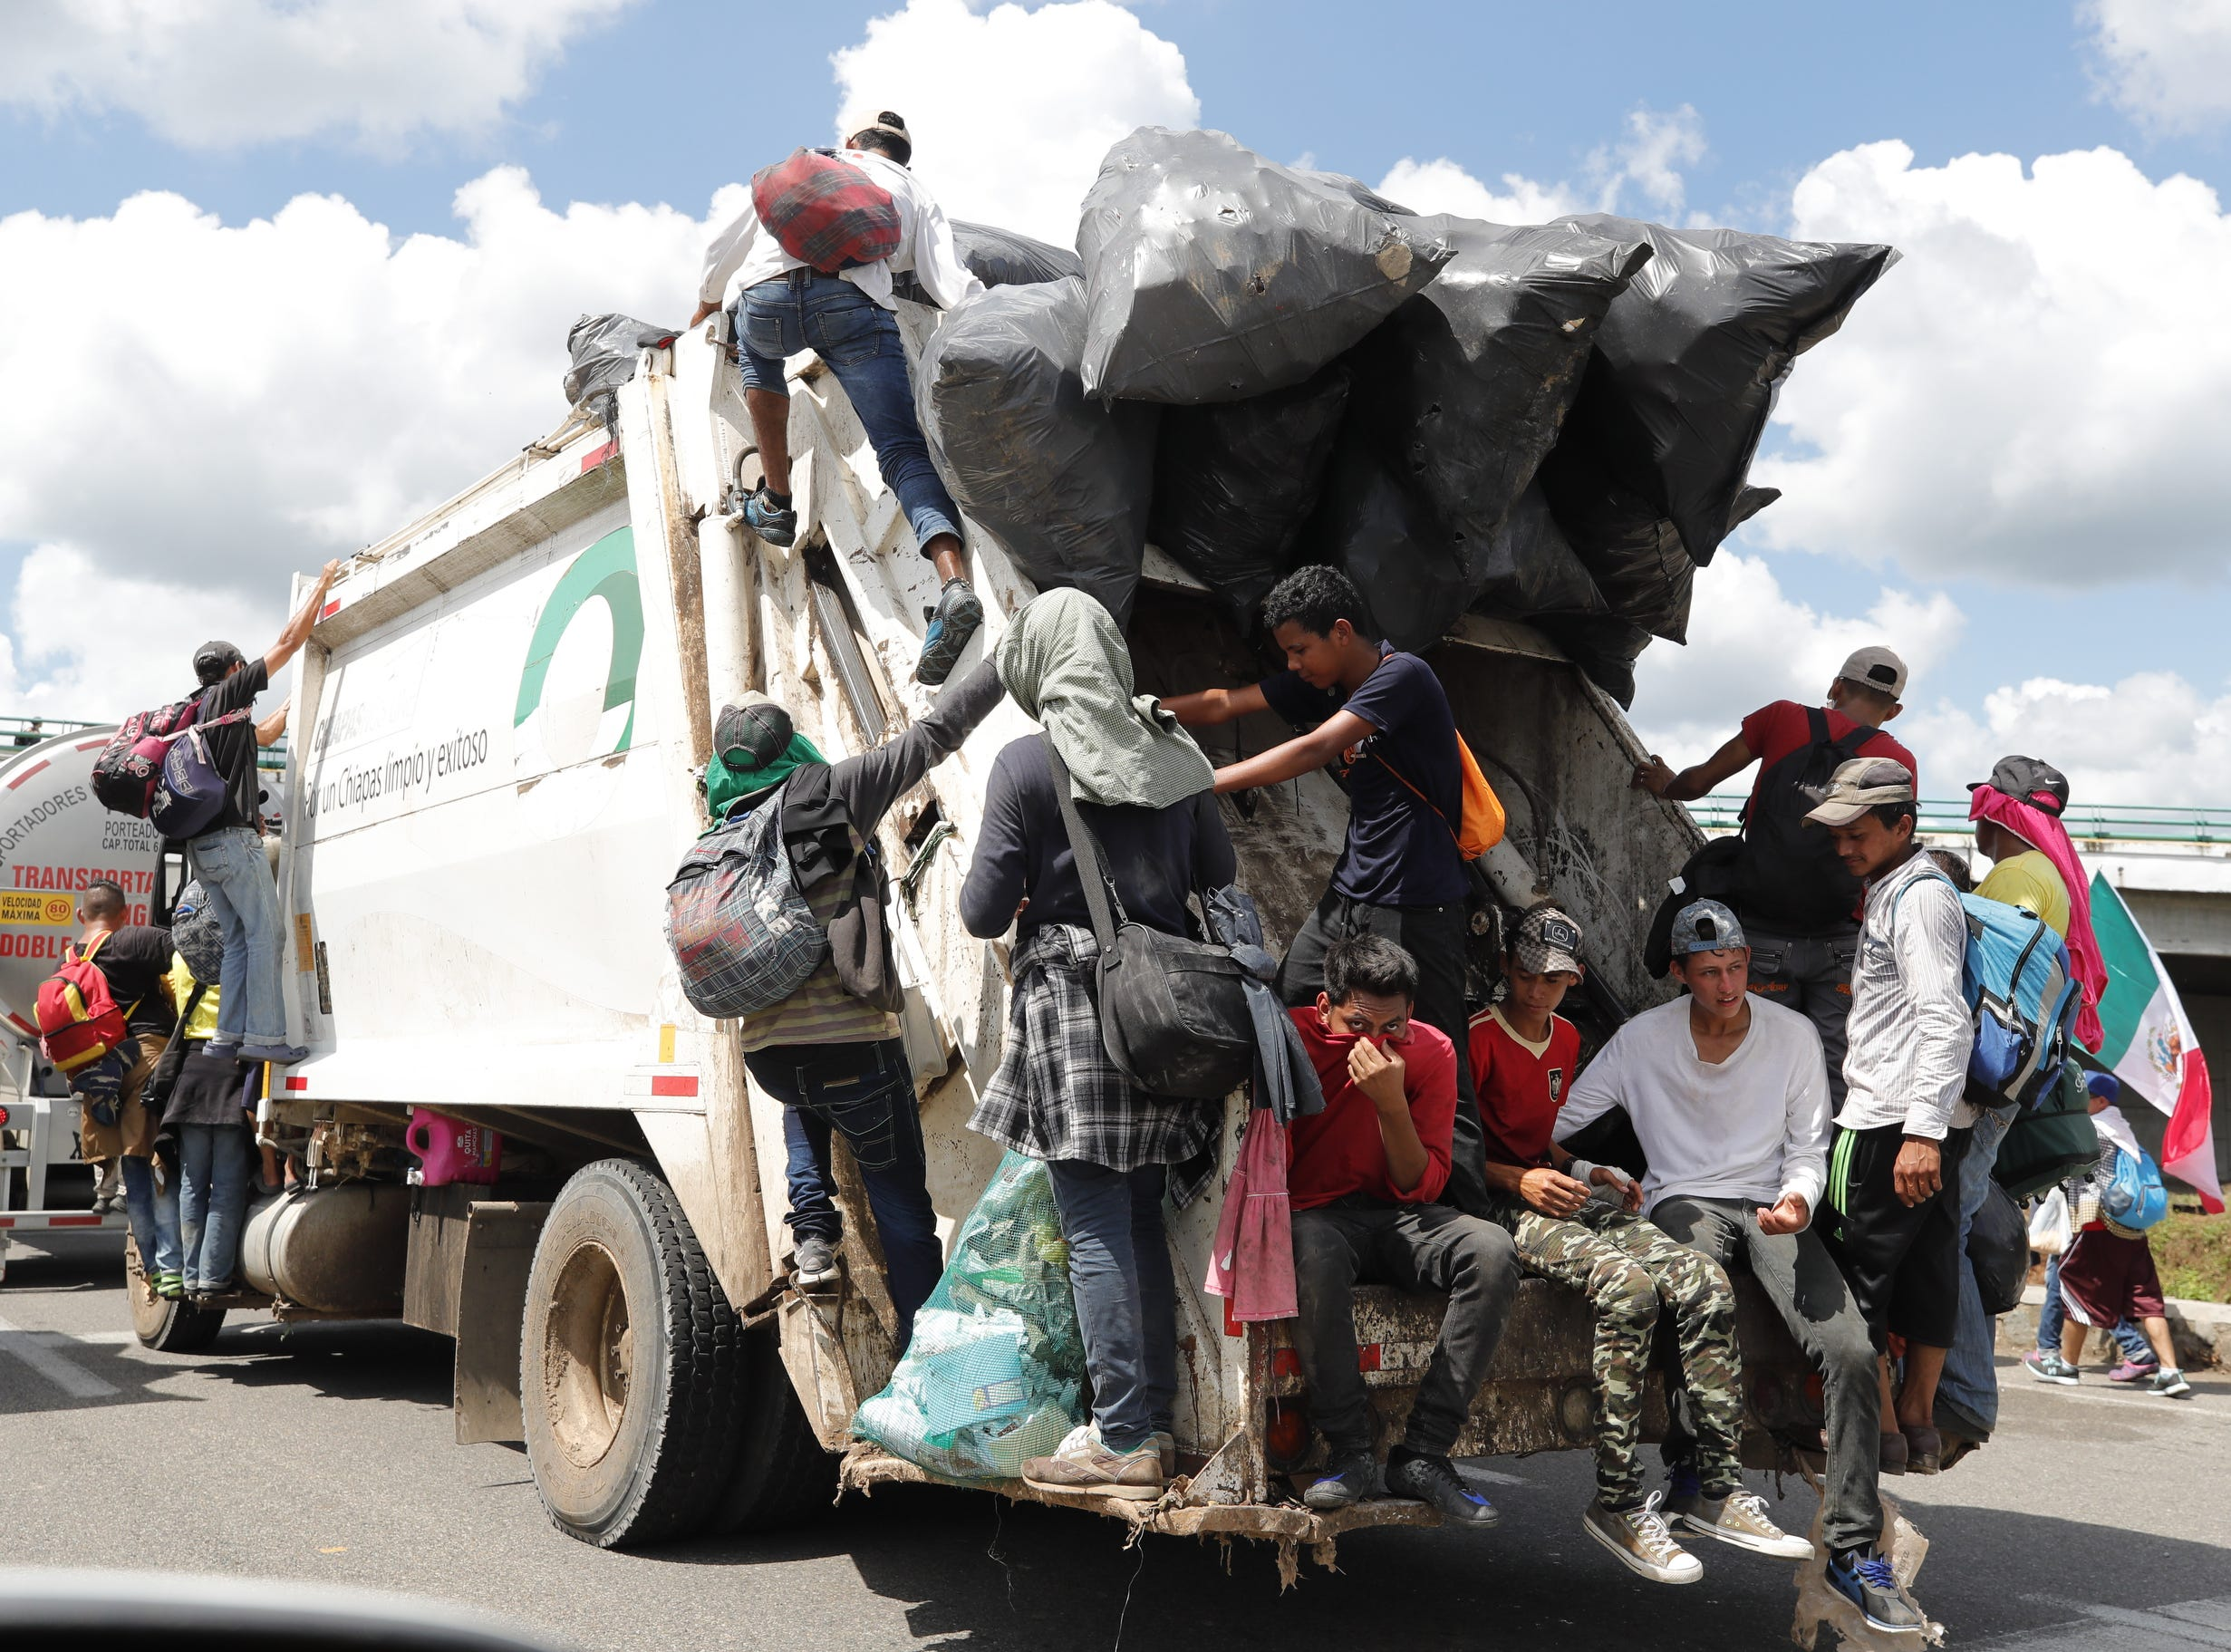 Migrants hitch rides on all sorts of on vehicles, as they continue on another stretch of Mexican territory towards the United States, in this case a garbage truck.